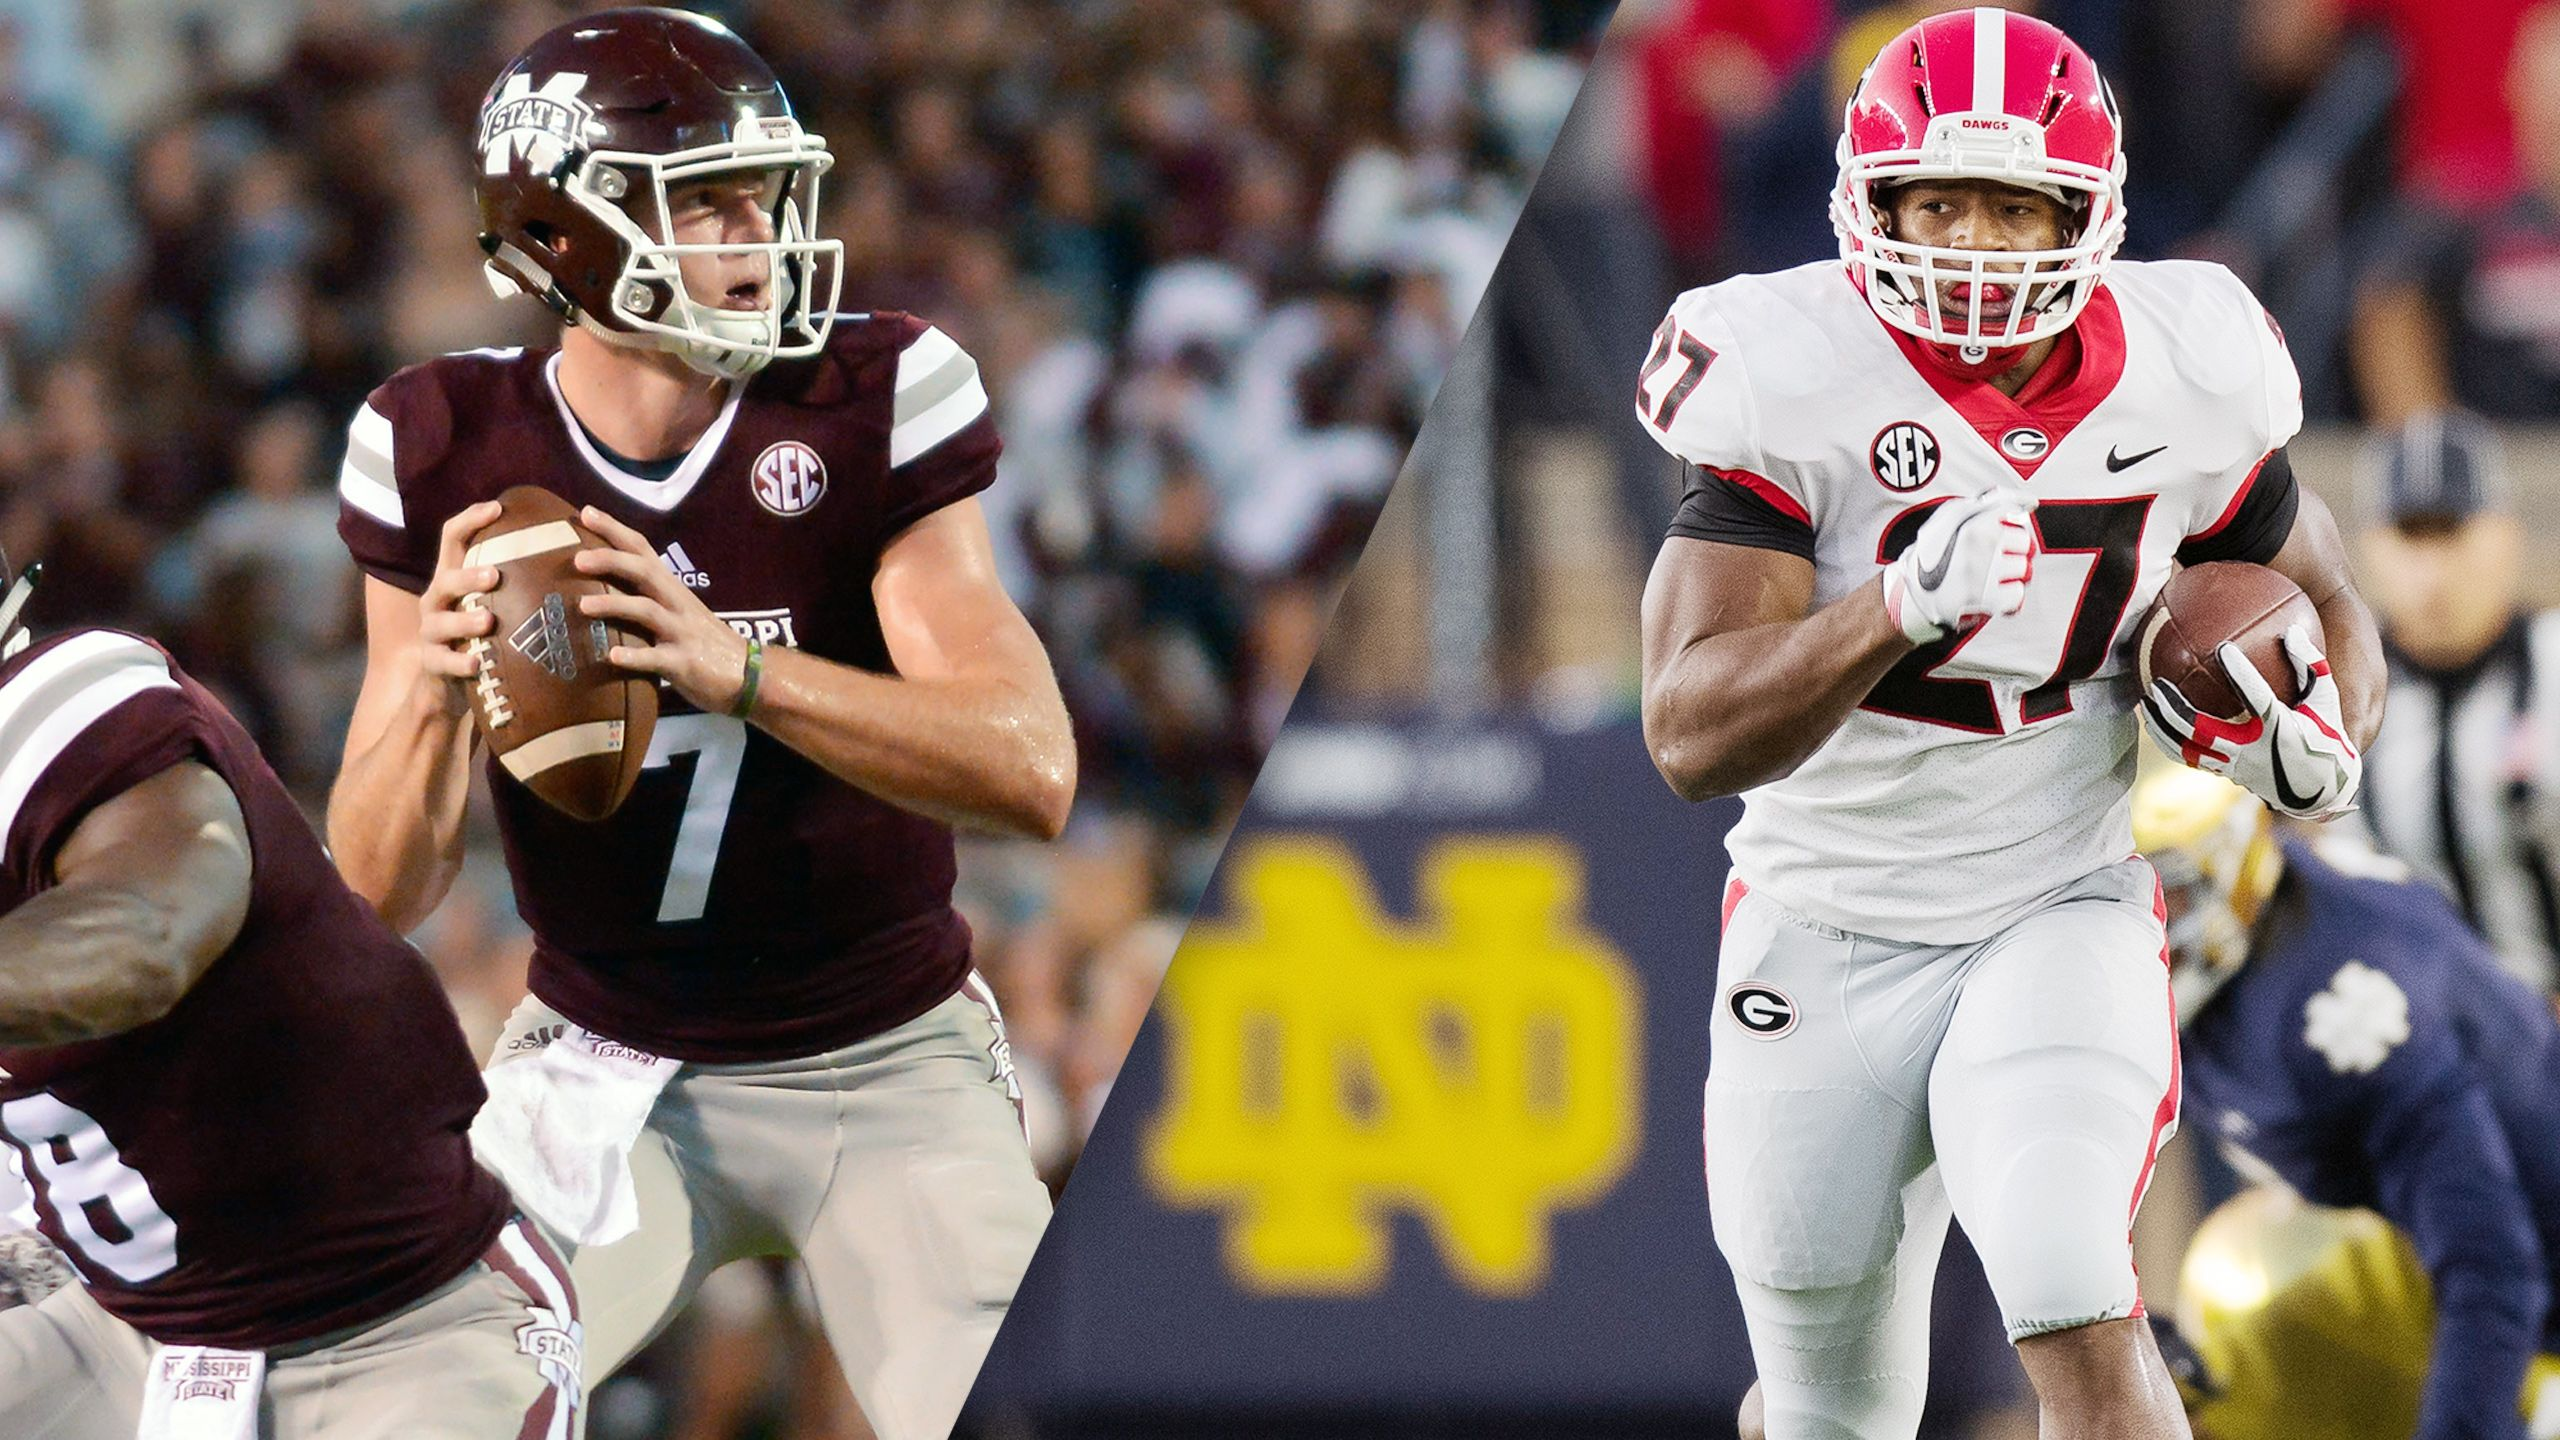 #17 Mississippi State vs. #11 Georgia (Football)